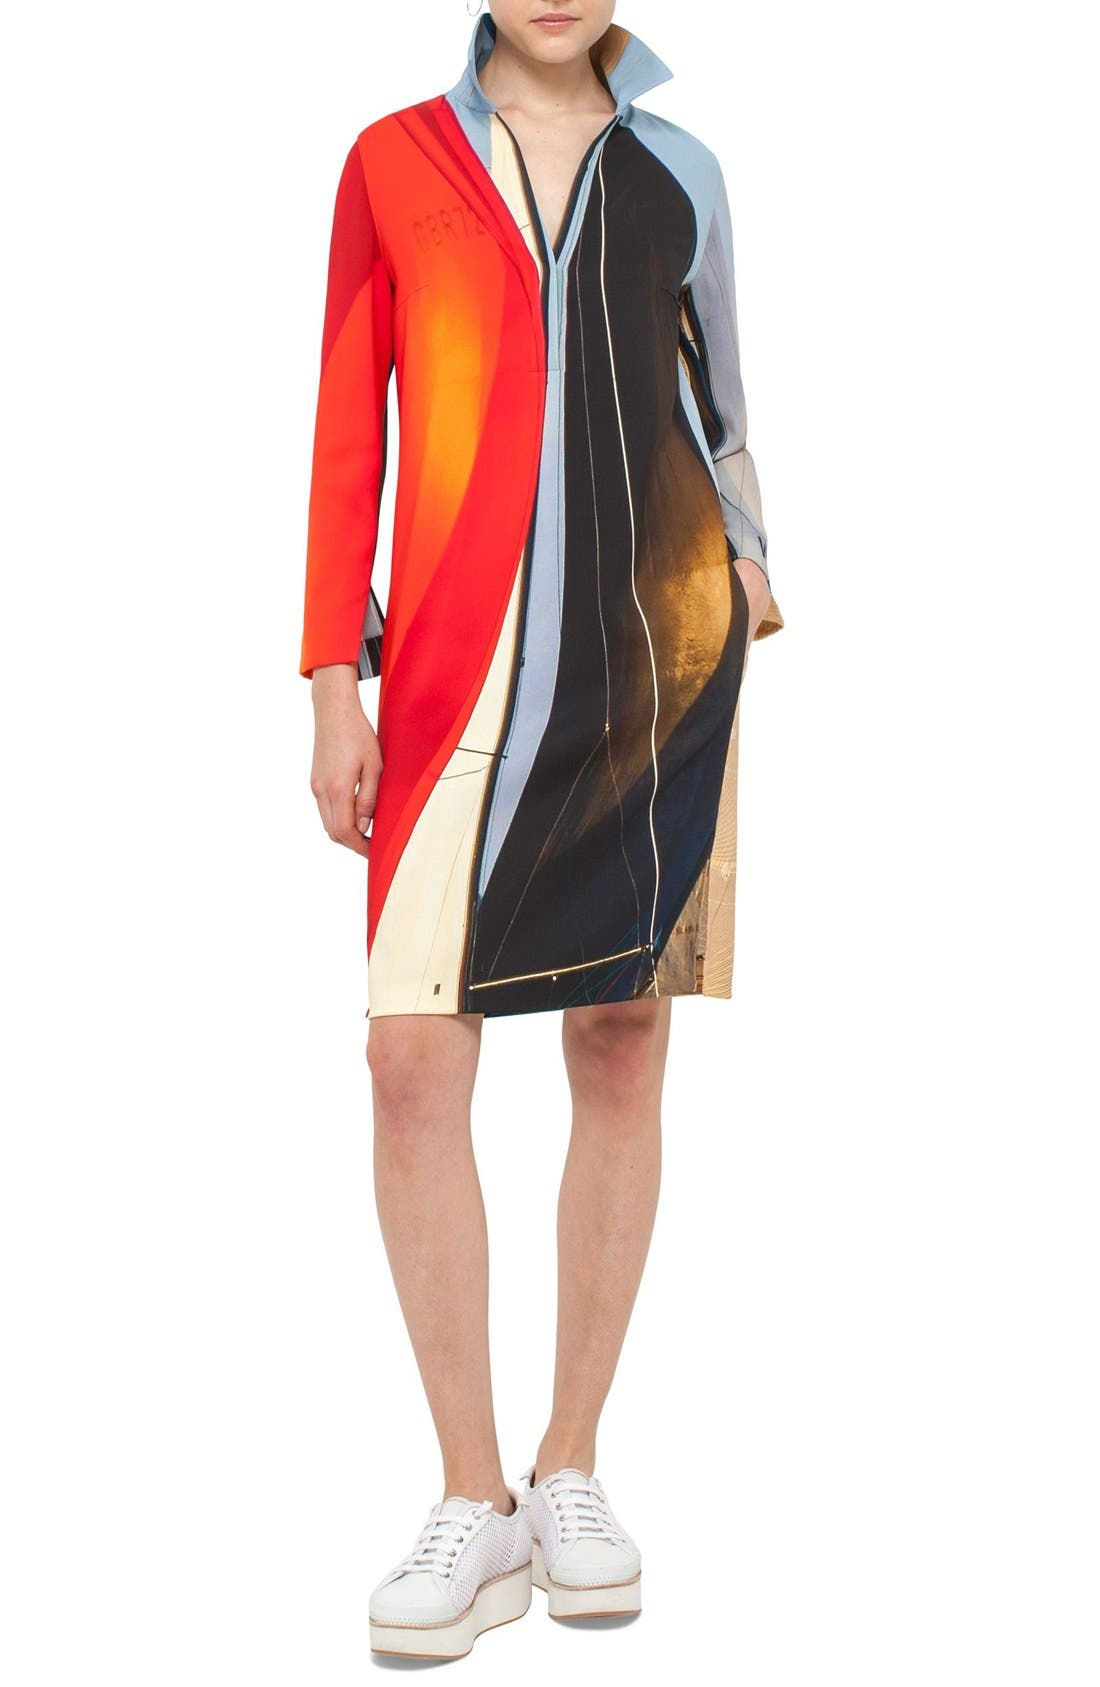 AKRIS PUNTO 'Mainsail' Print Tunic Dress